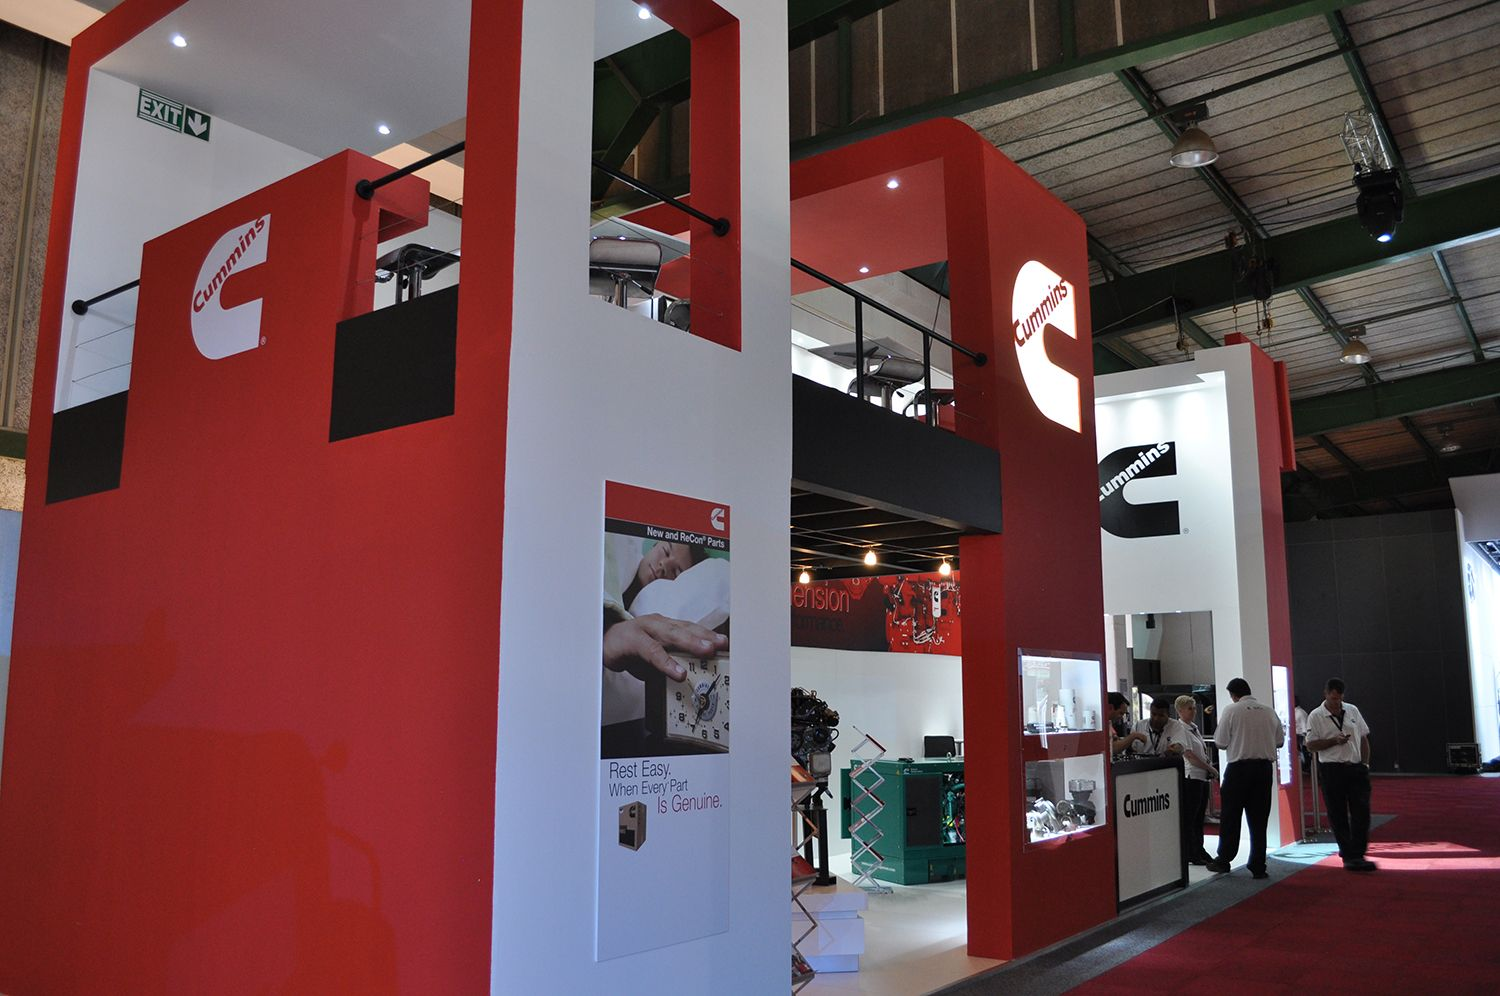 Expo Exhibition Stands Johannesburg : Indoor stand for cummins sa at johannesburg international